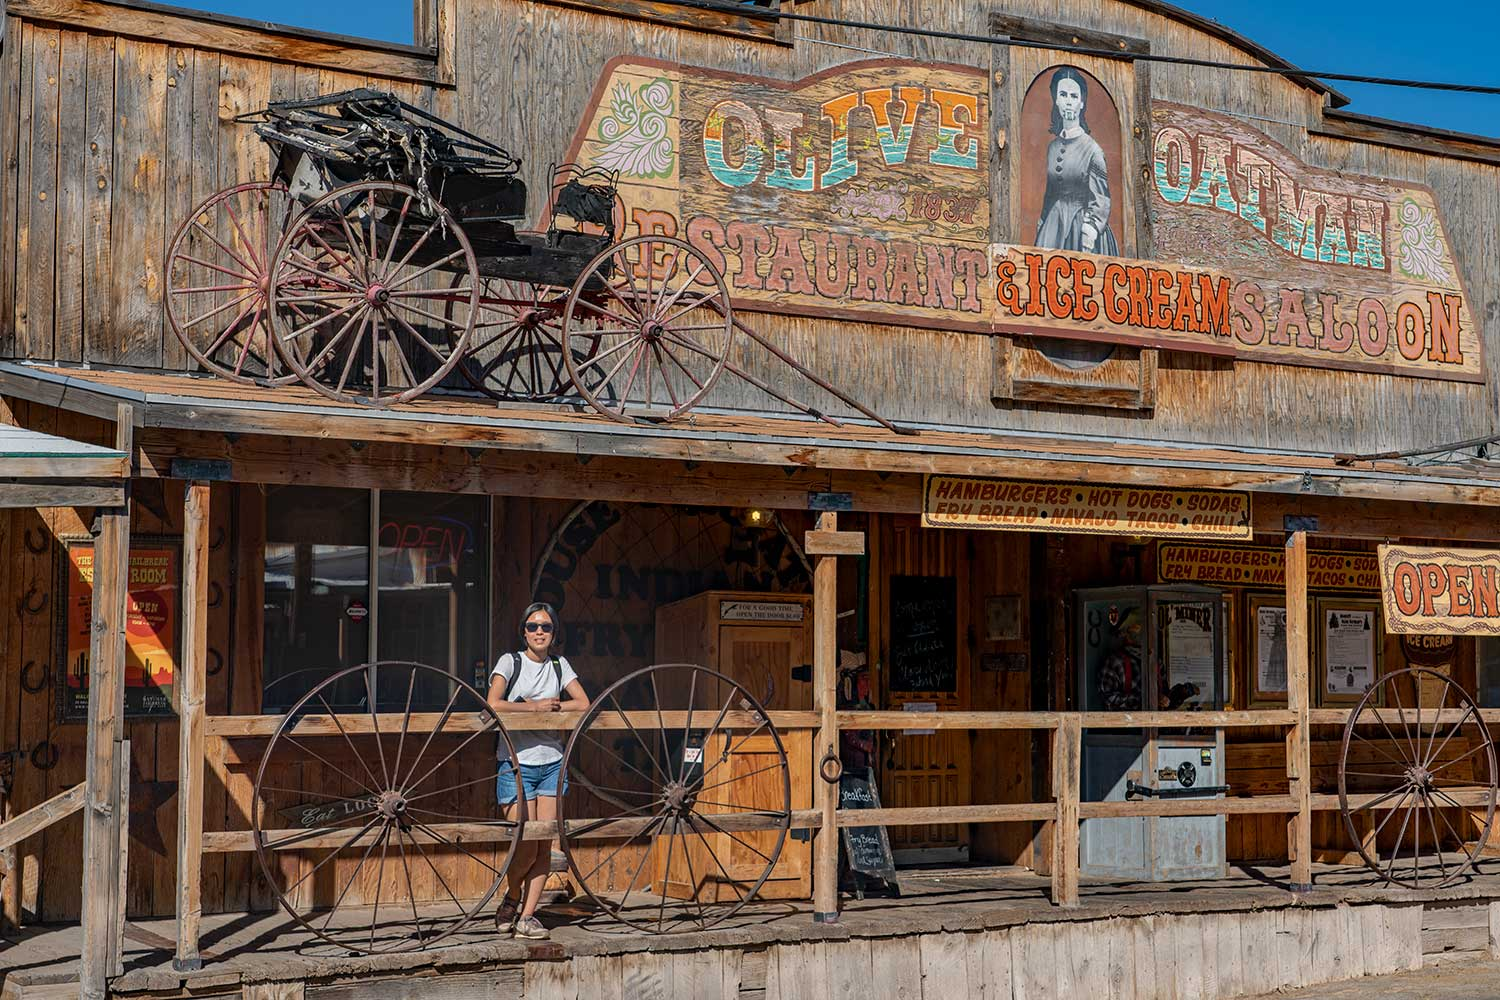 Roadtrip USA - Oatman